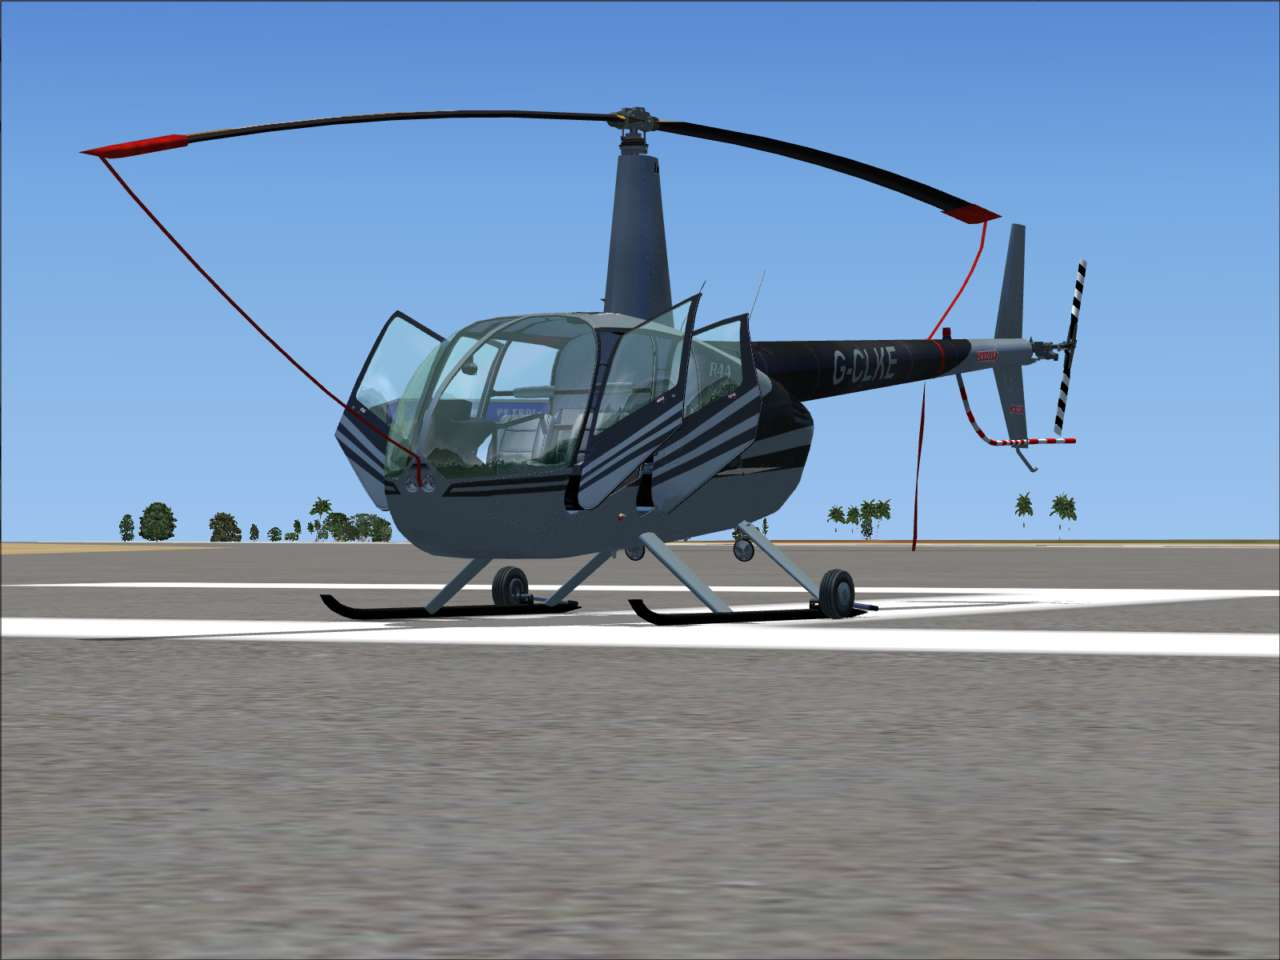 Just Flight - Flying Club R44 Helicopter